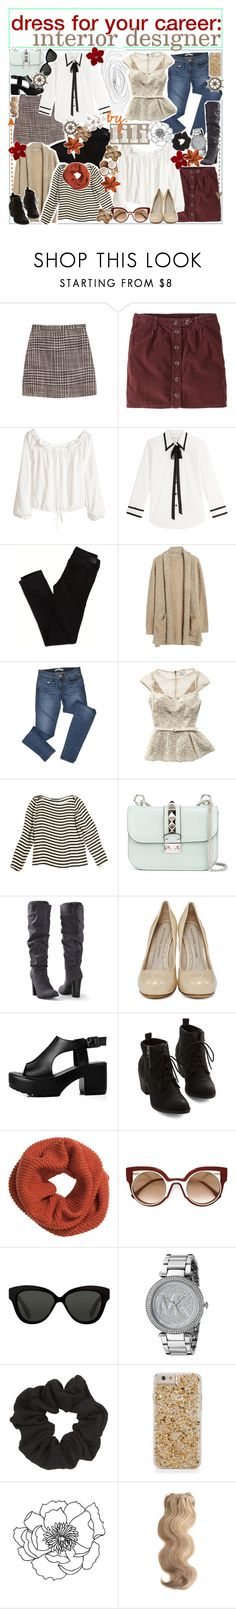 """""""dress for your career: interior designer"""" by world-tips ❤ liked on Polyvore featuring Missoni, Jack Wills, H&M, Marc Jacobs, American Eagle Outfitters, J Brand, mark., Ralph Lauren, Valentino and Venus"""